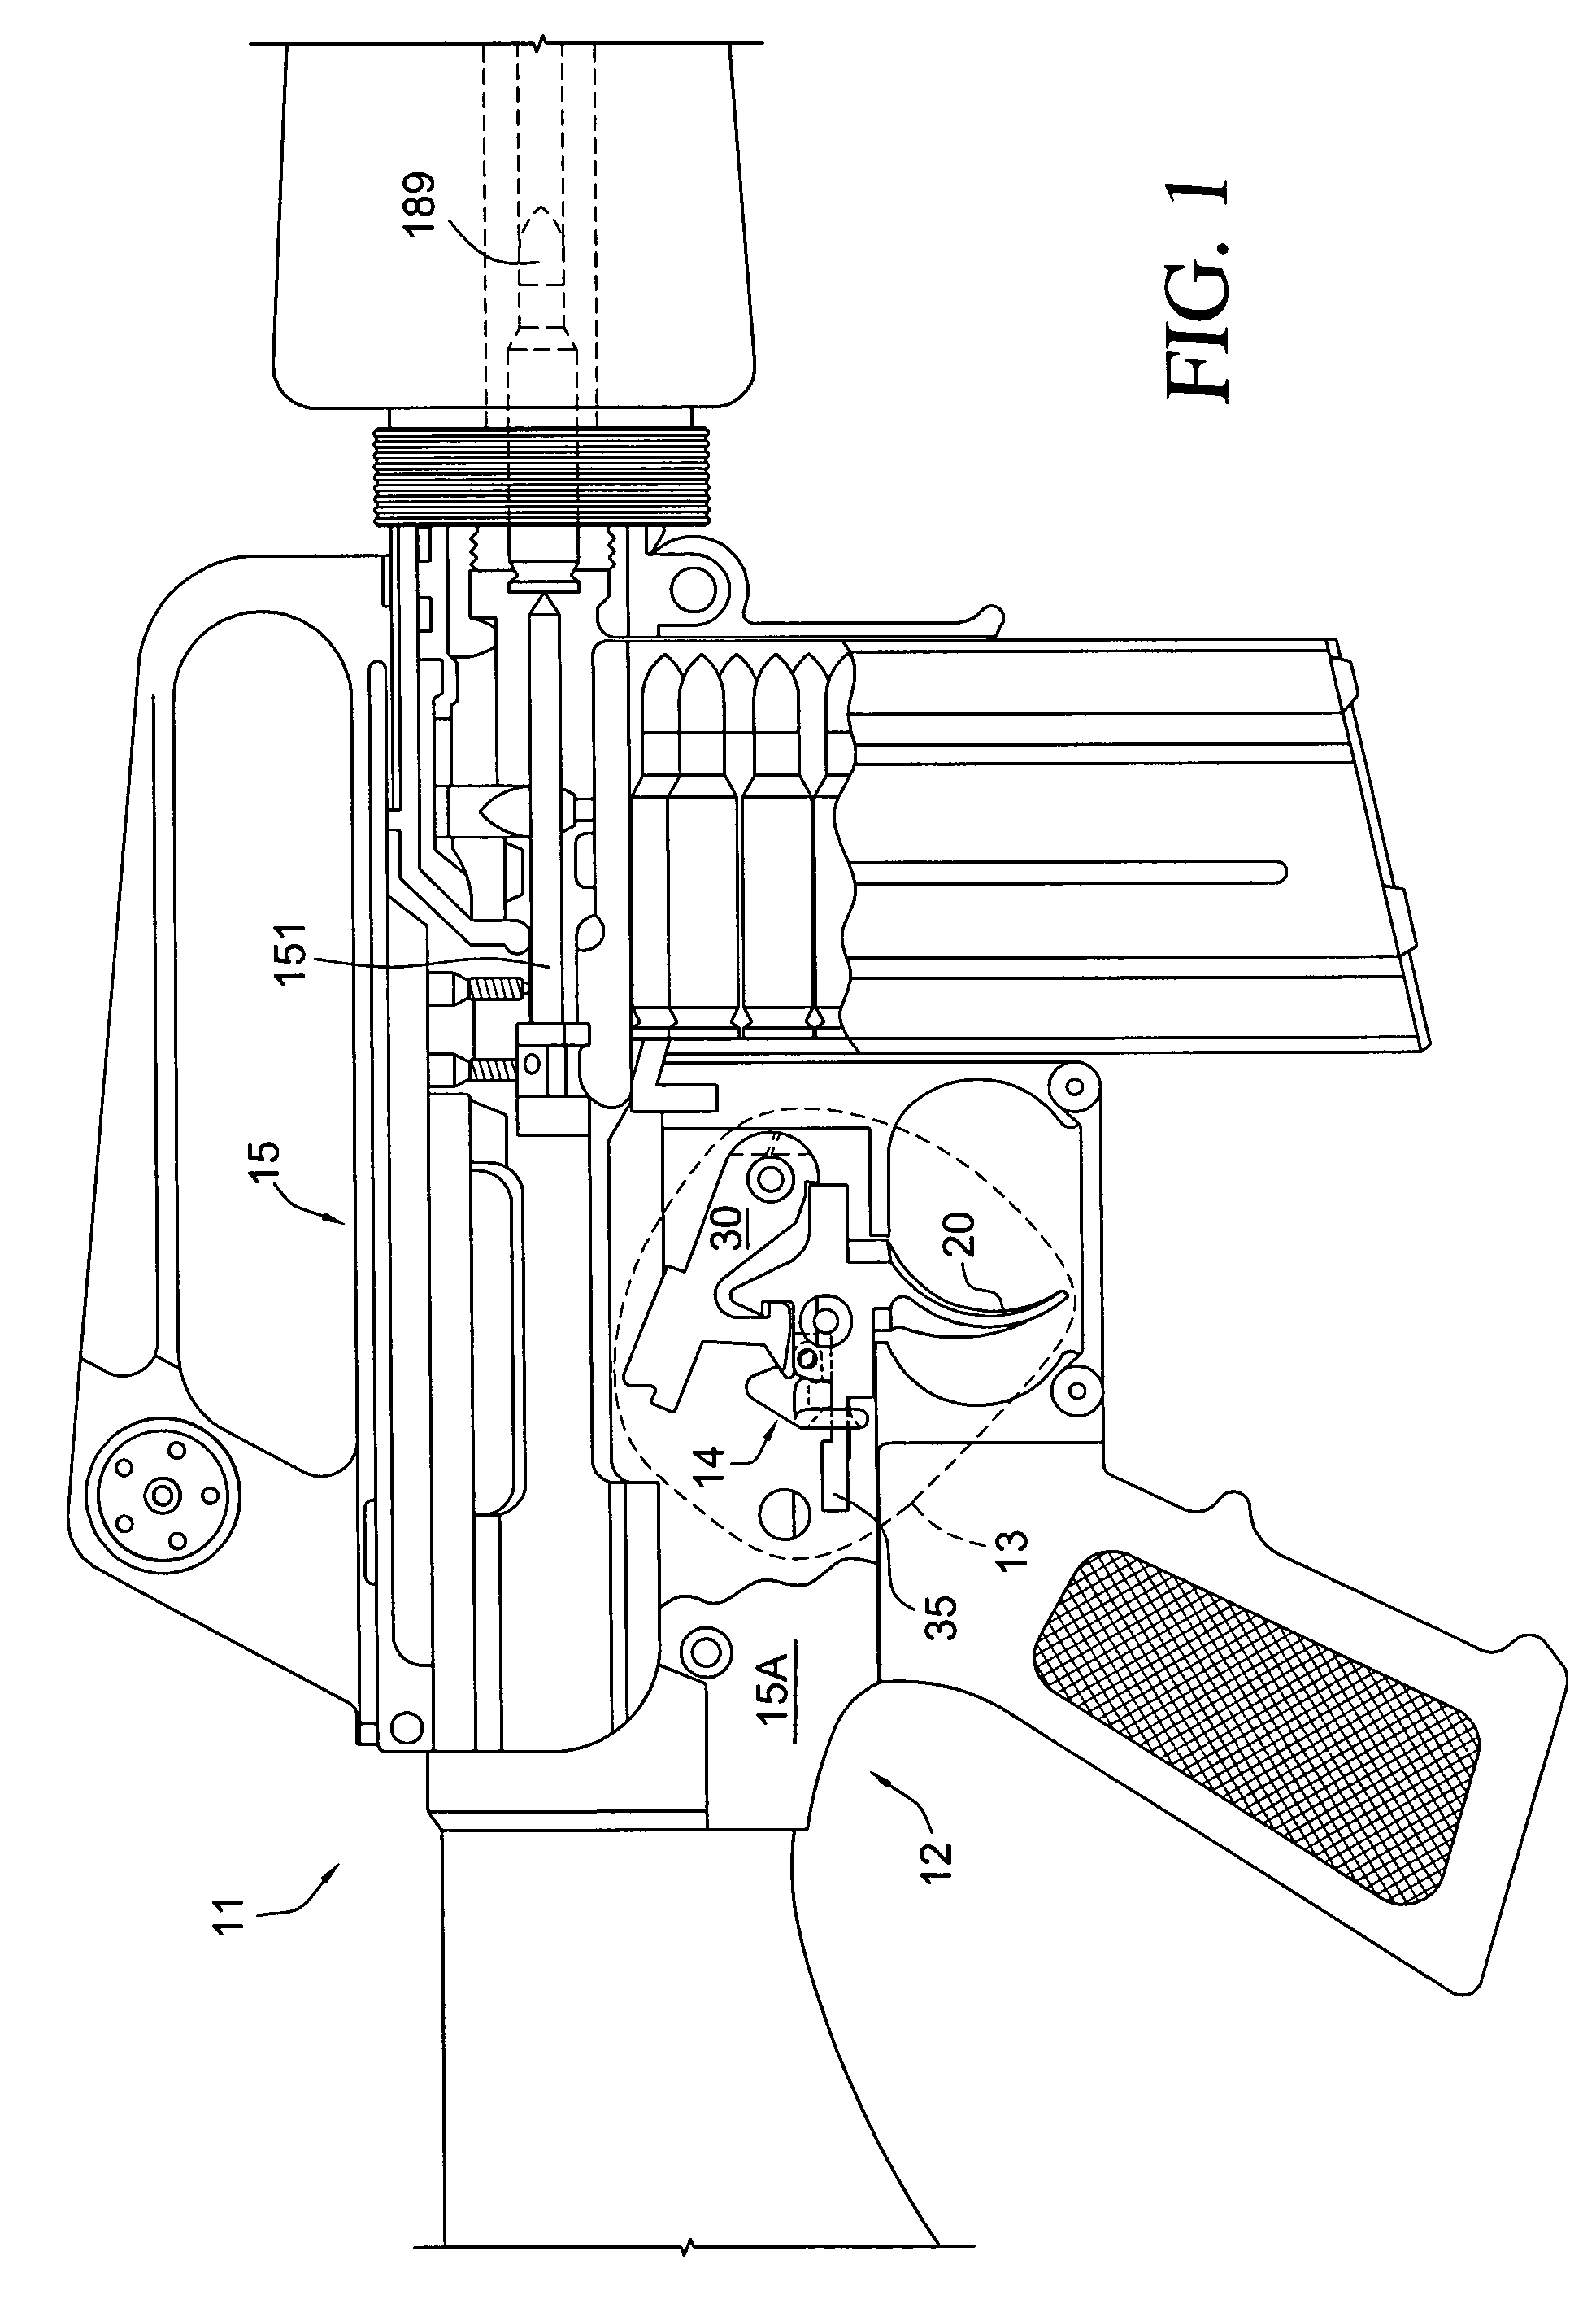 gun sight diagram gun grip diagram m16 grip diagram engine diagram and wiring diagram